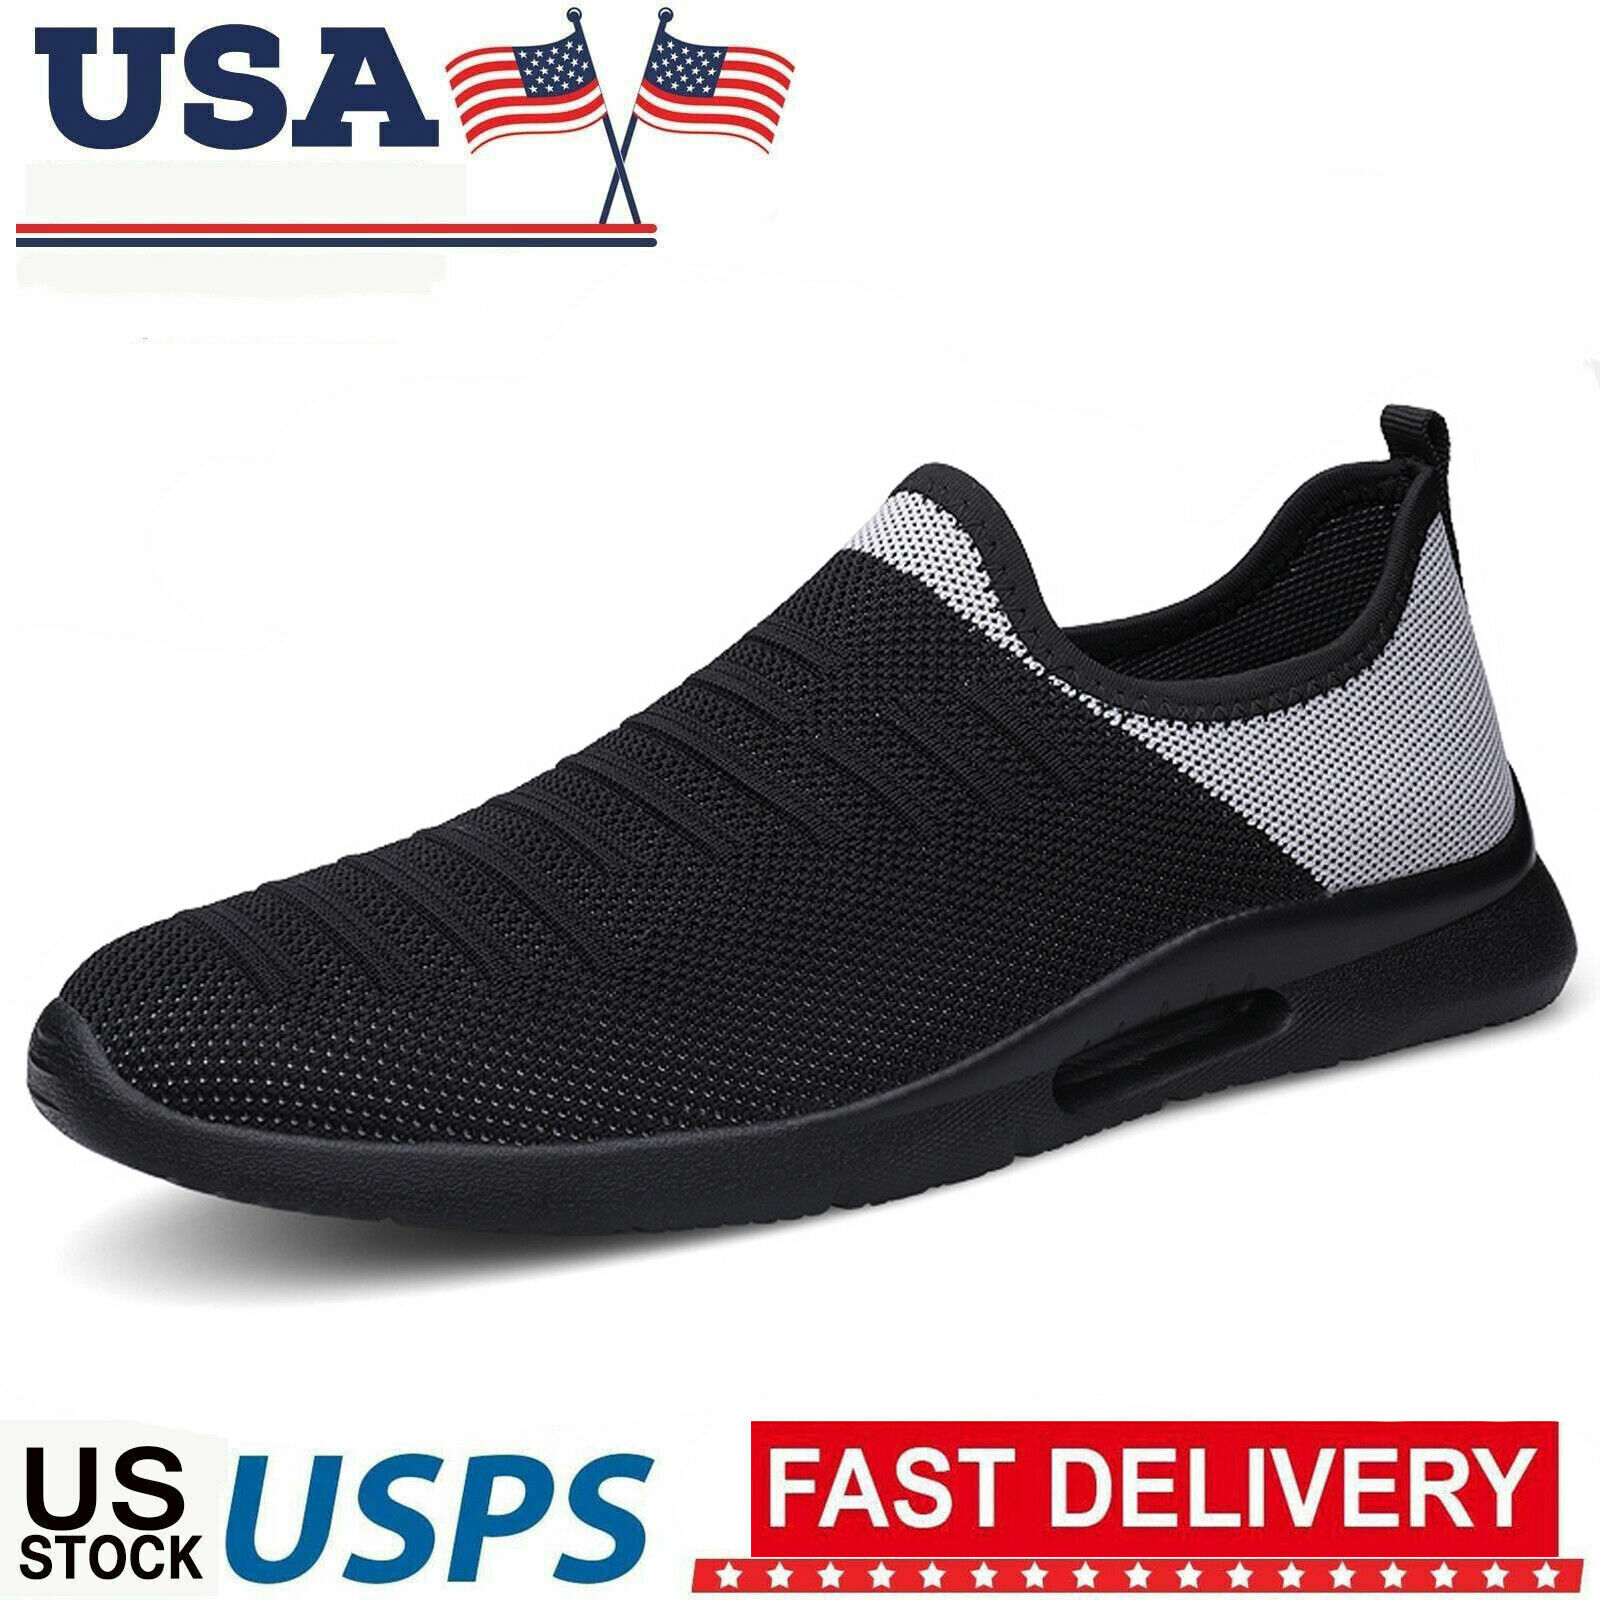 Men's Casual Slip on Shoes Lightweight Running Athletic Sport Tennis Sneakers US